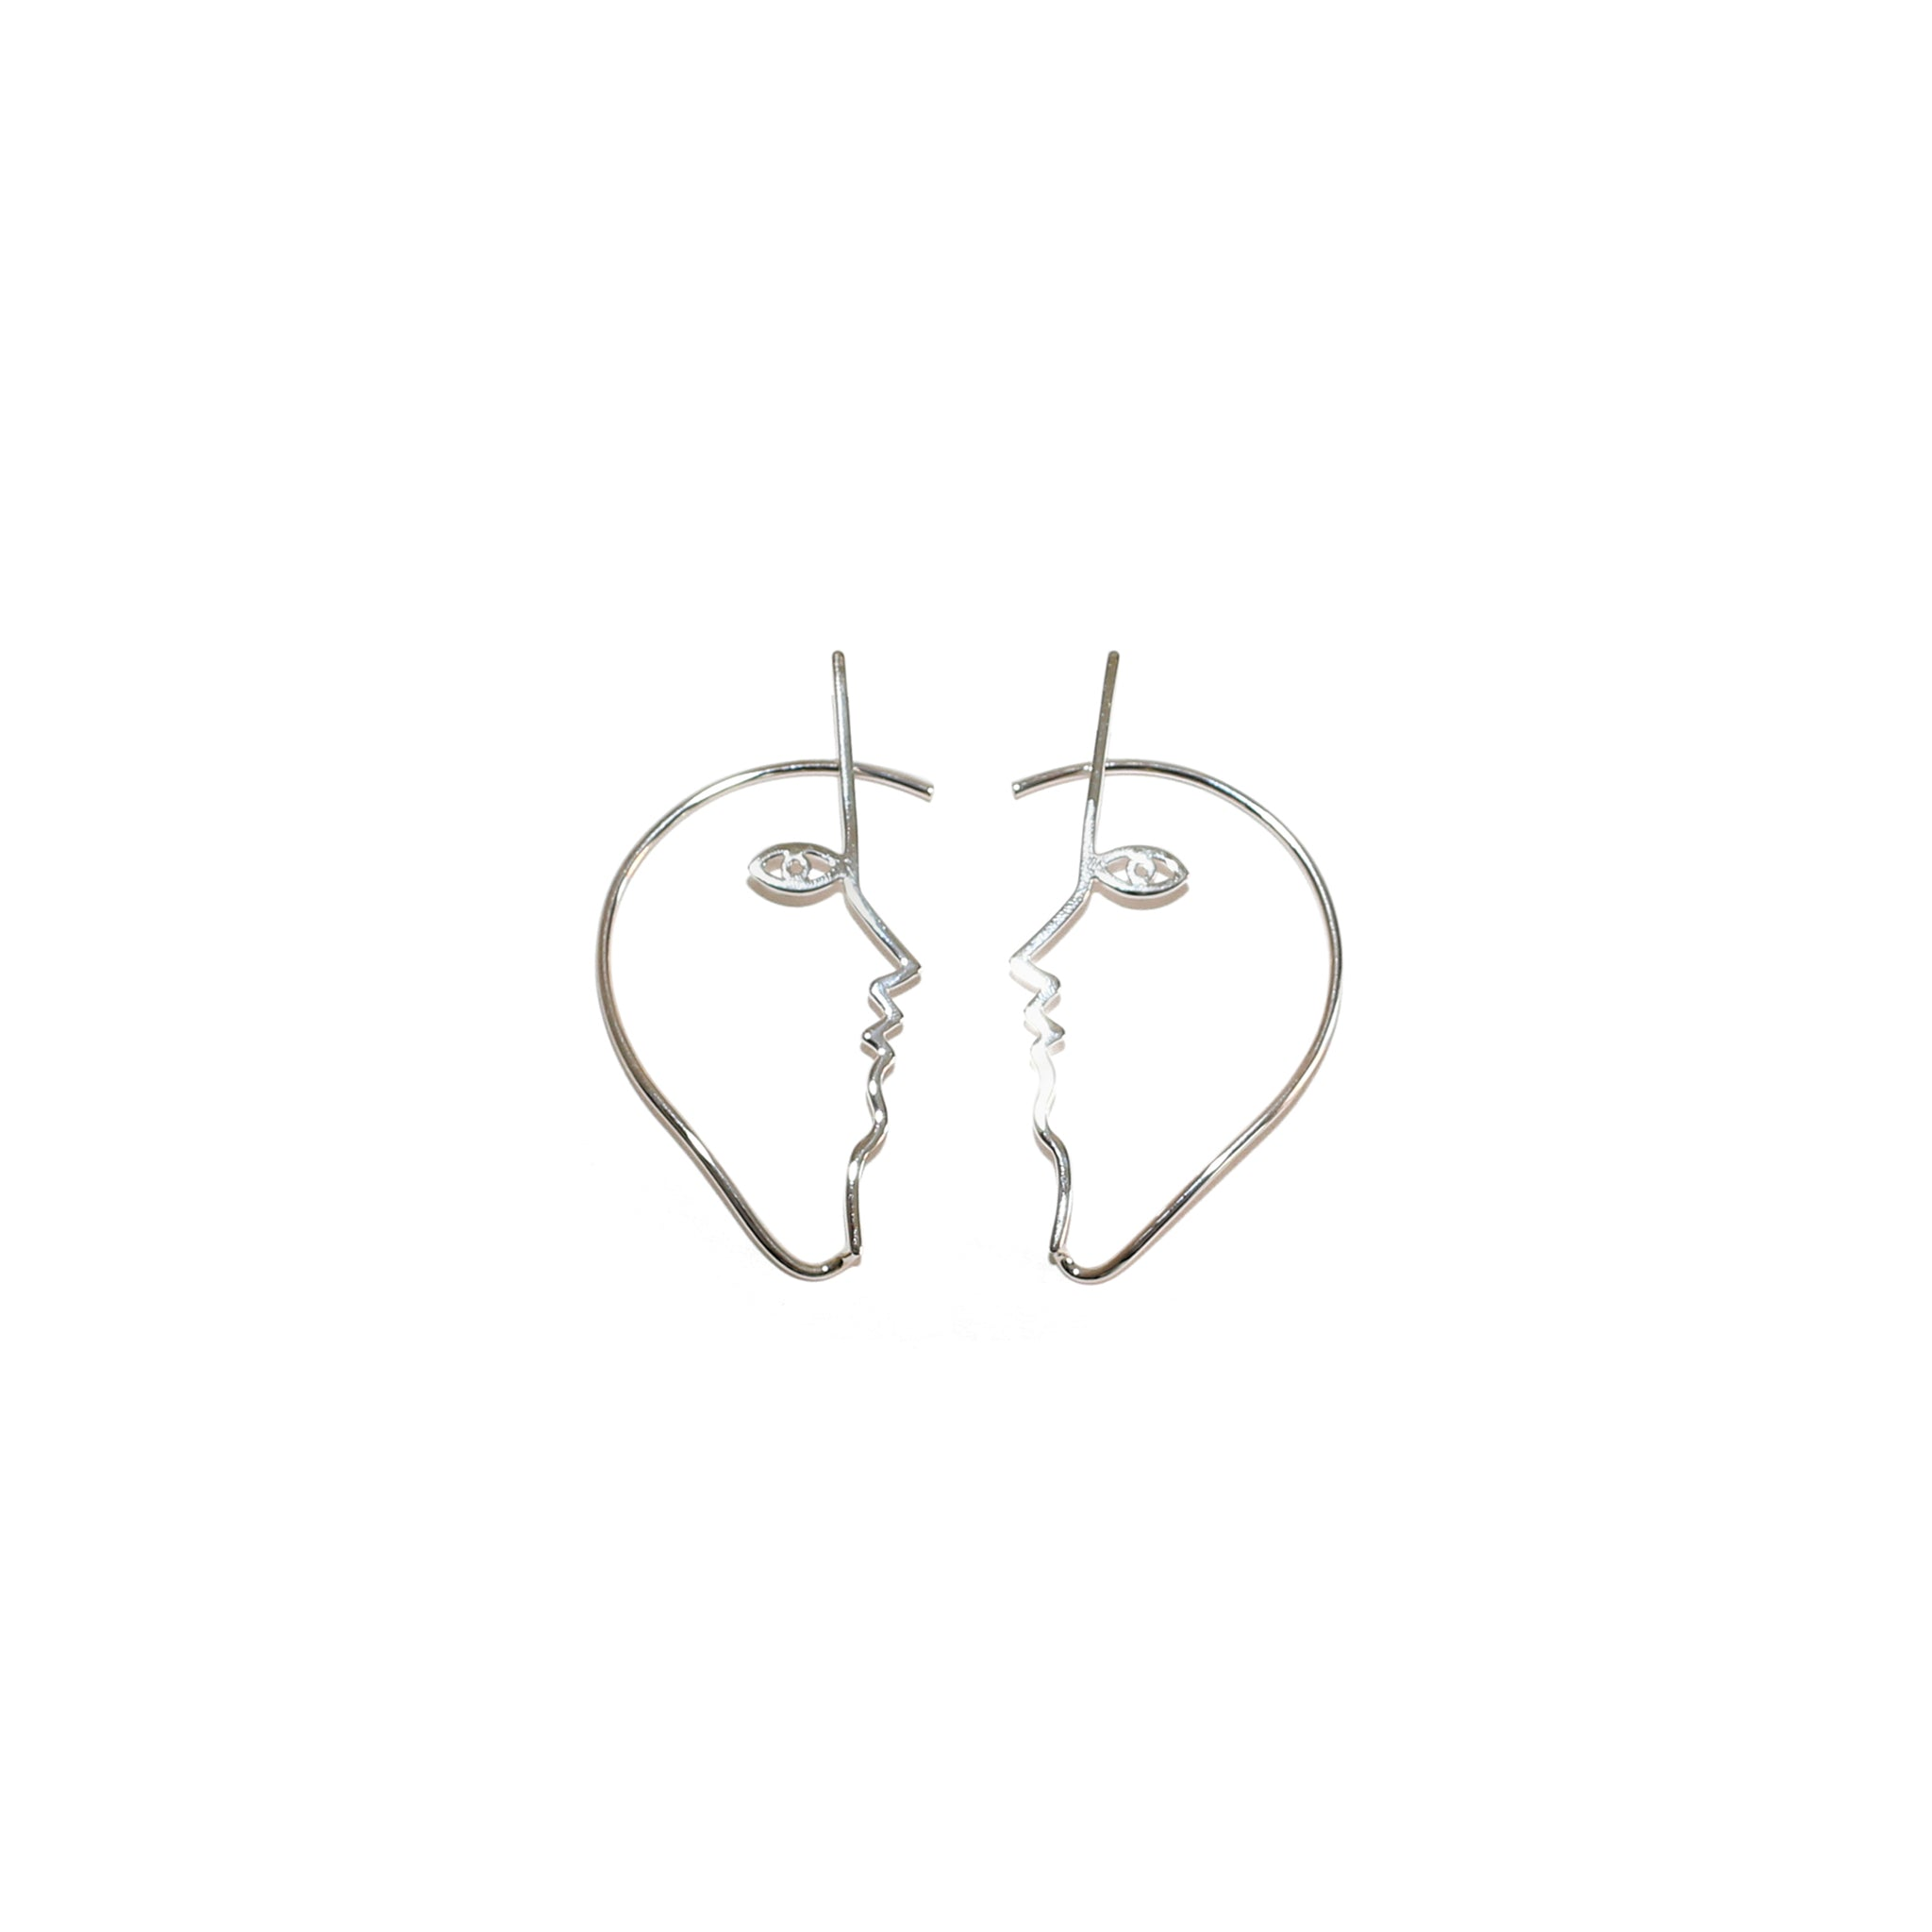 Dina Ear Cuffs Sterling Silver